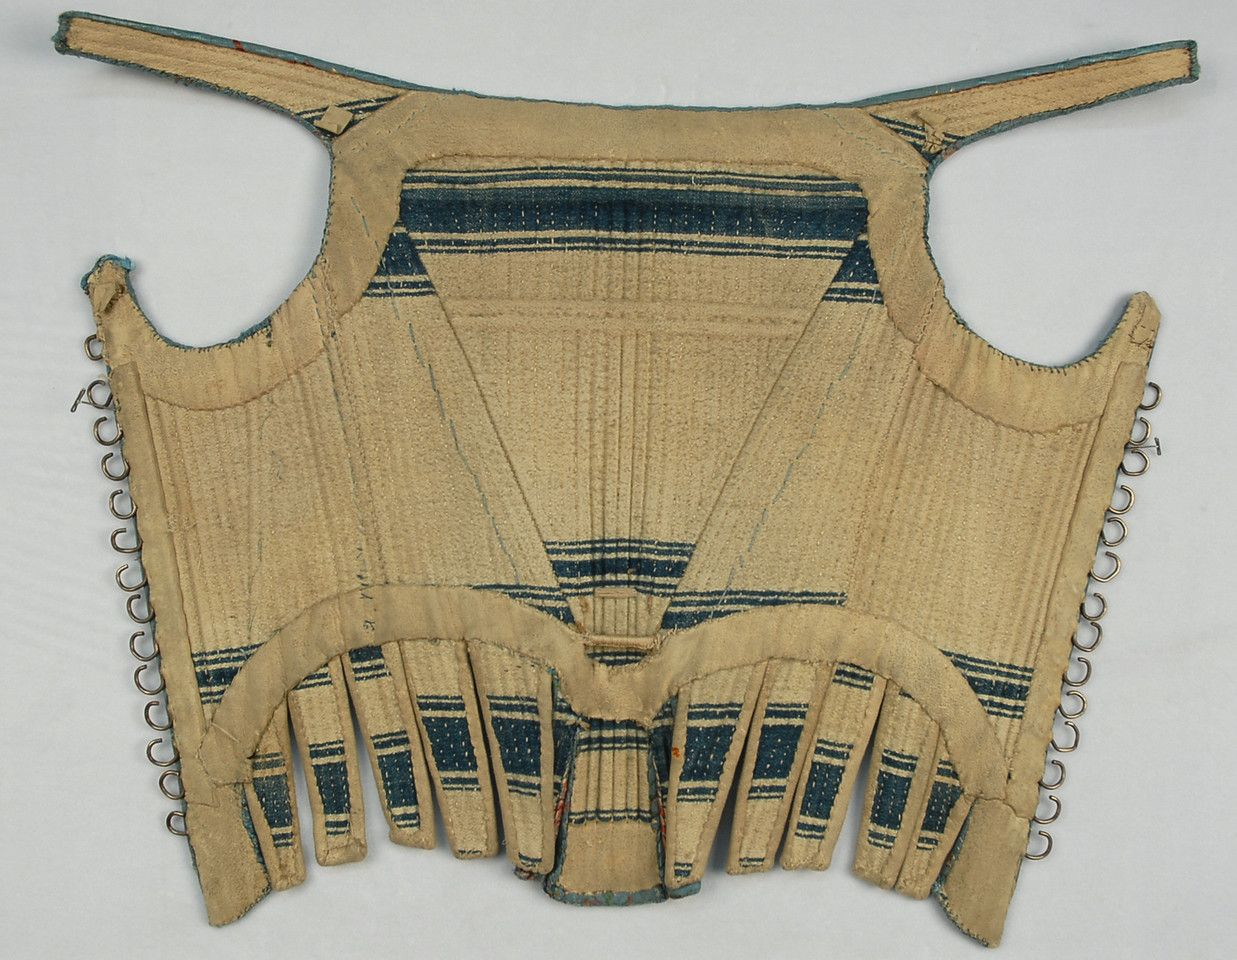 LOT 496 SILK CORSET and STOMACHER, AMERICAN or EUROPEAN, 18th C. Blue faille with polychrome floral brocade, the corset having straps, white leather tabs and silver metal hooks, blue and white striped lining with leather facings, B-29, W-22, center front L-14. Stomacher TRIMMED in metallic gold passementerie, padded and backed in printed cotton, 15 x 12. (Edge wear, leather soiled, metallic loss, few holes to stomacher) overall very good. MMA. $1,800